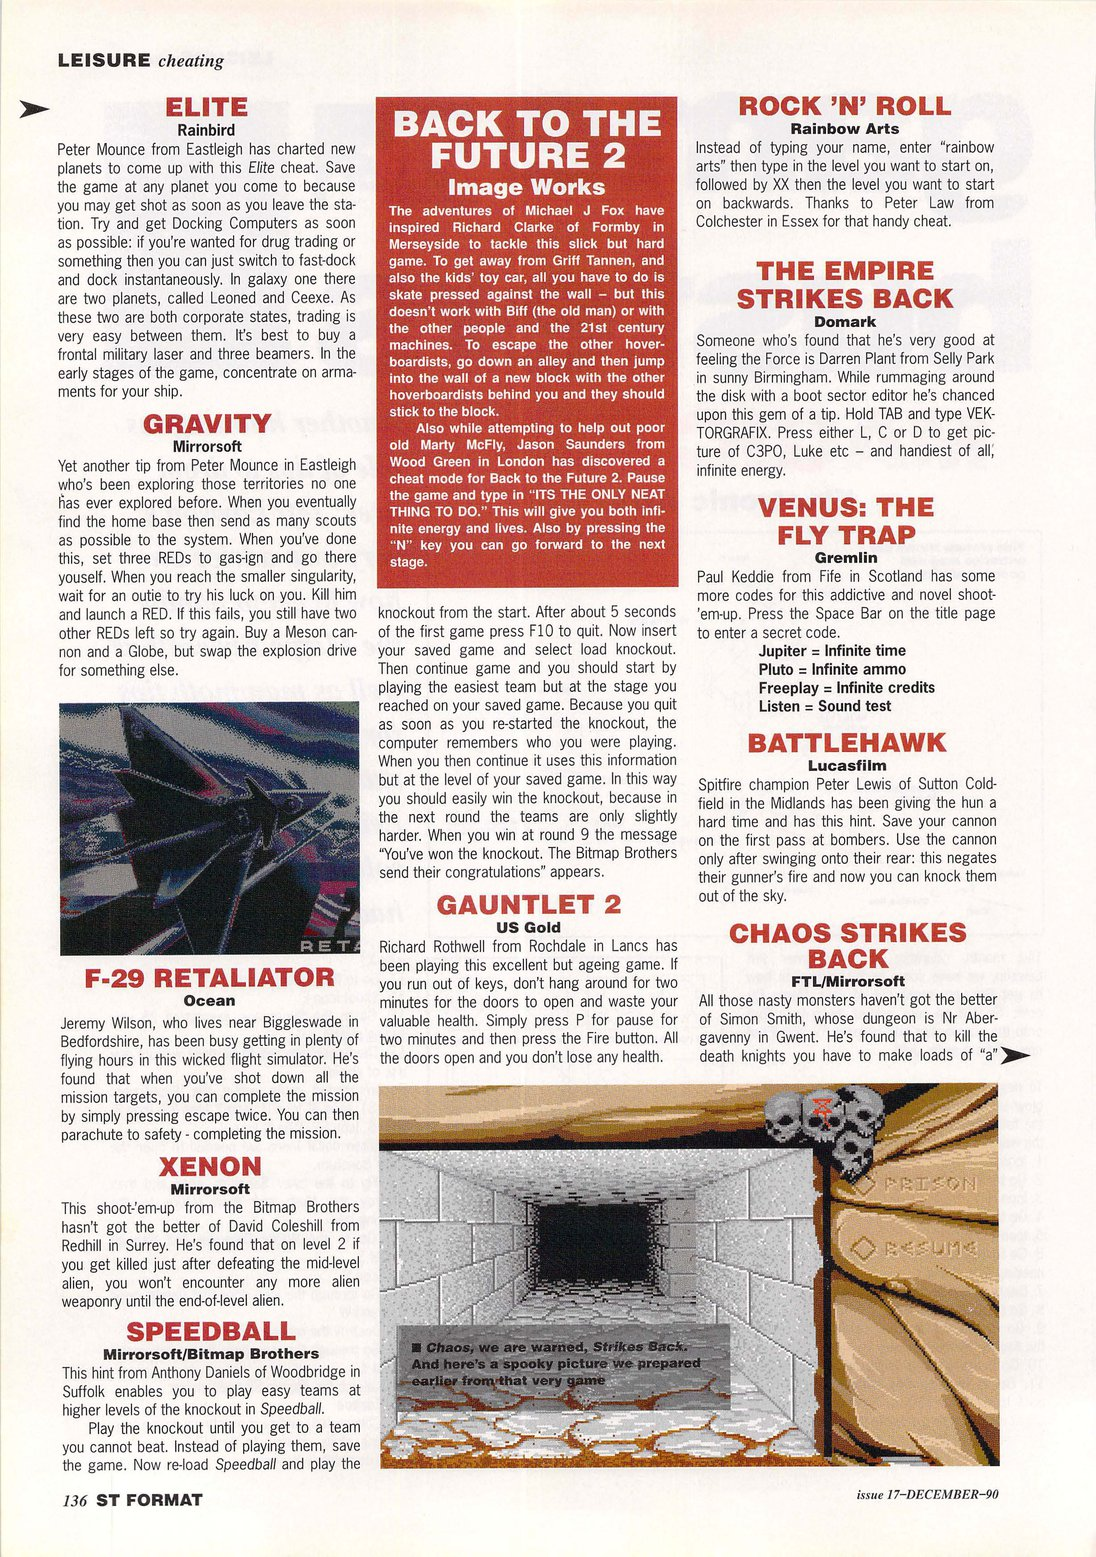 Chaos Strikes Back Hints published in British magazine 'ST Format', Issue #17 December 1990, Page 136